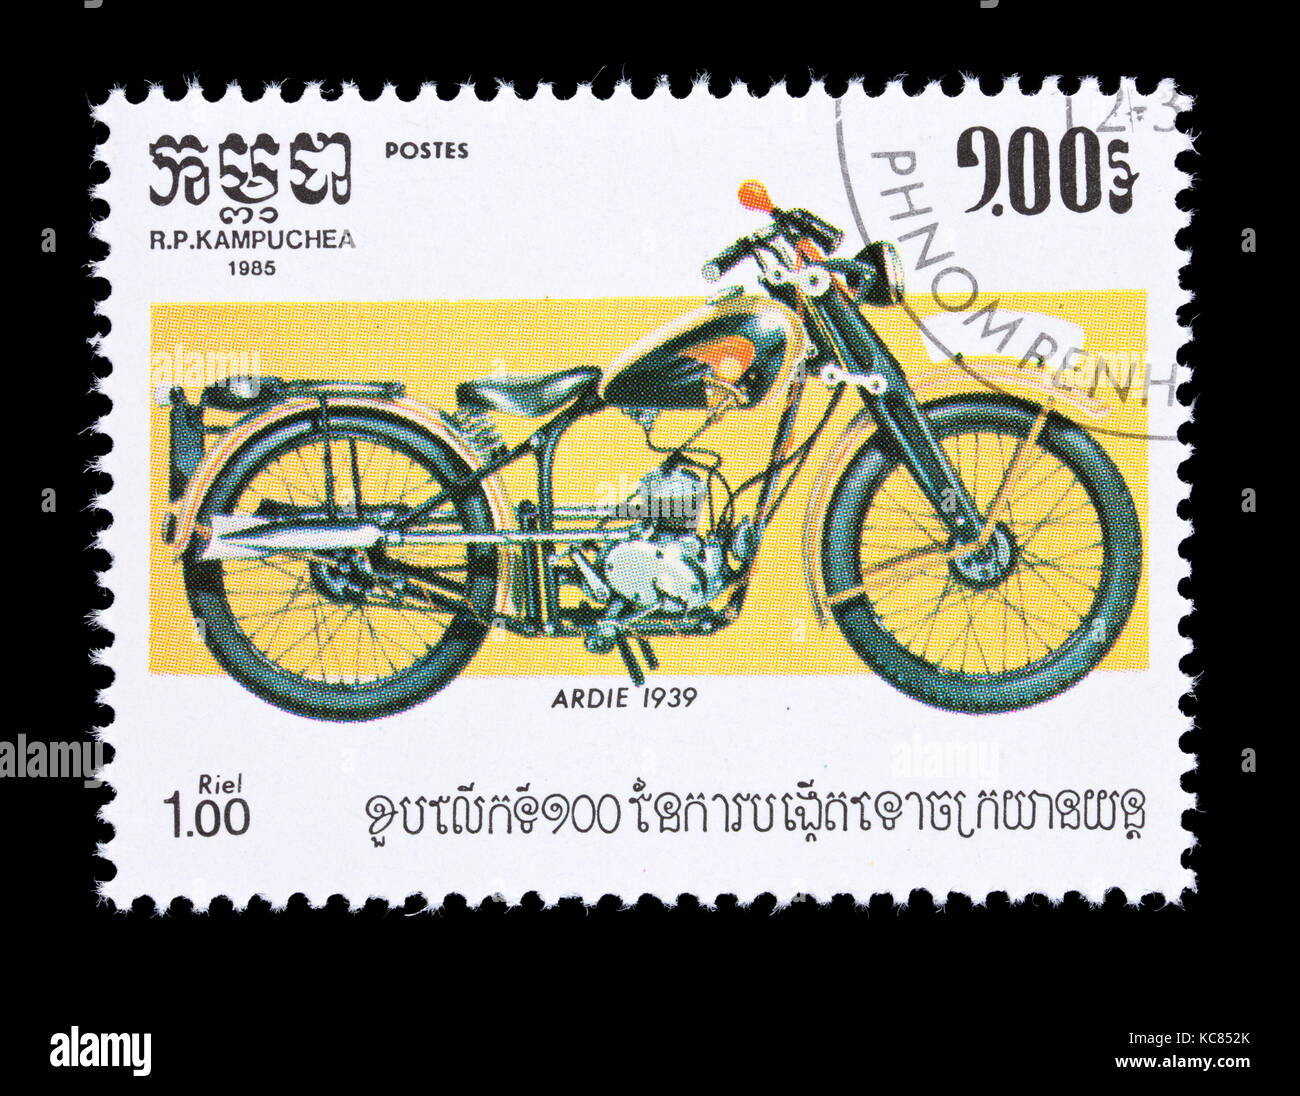 Postage stamp from Cambodia (Kampuchea) depicting 1939 Ardie classic motorcycle - Stock Image